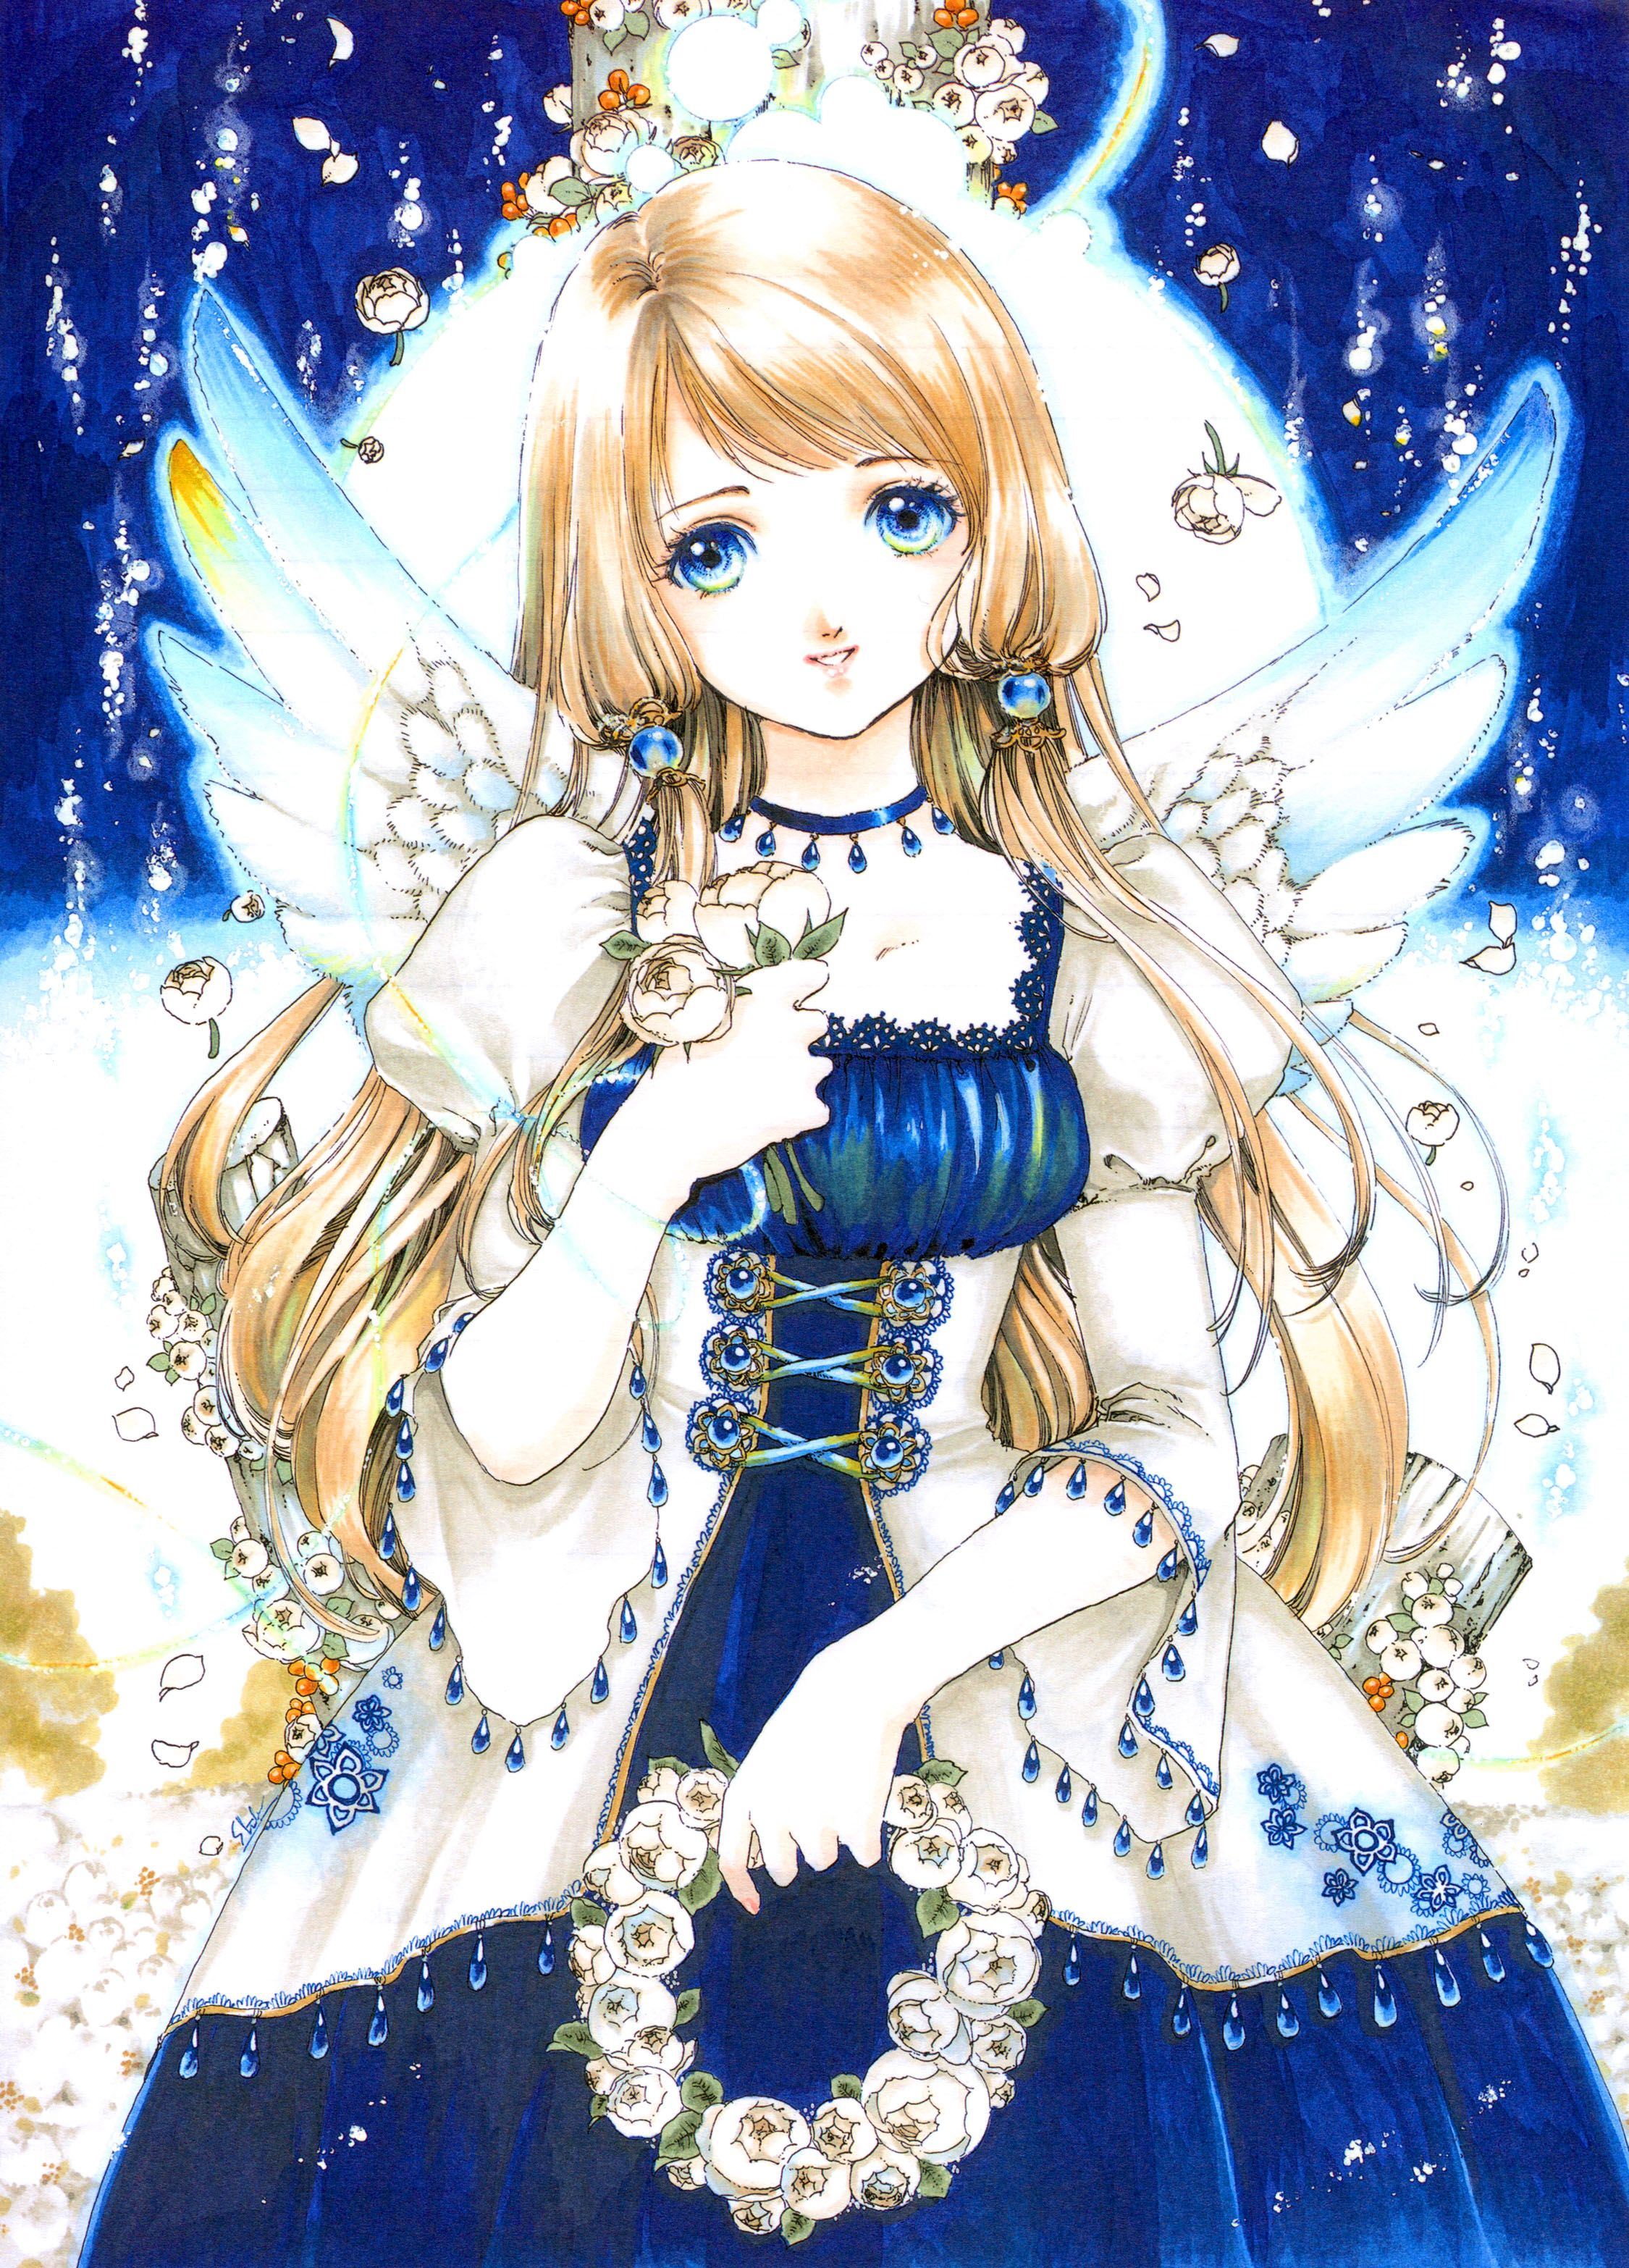 Moon angel with long blond hair blue eyes iridescent wings white corset dress by manga artist shiitake